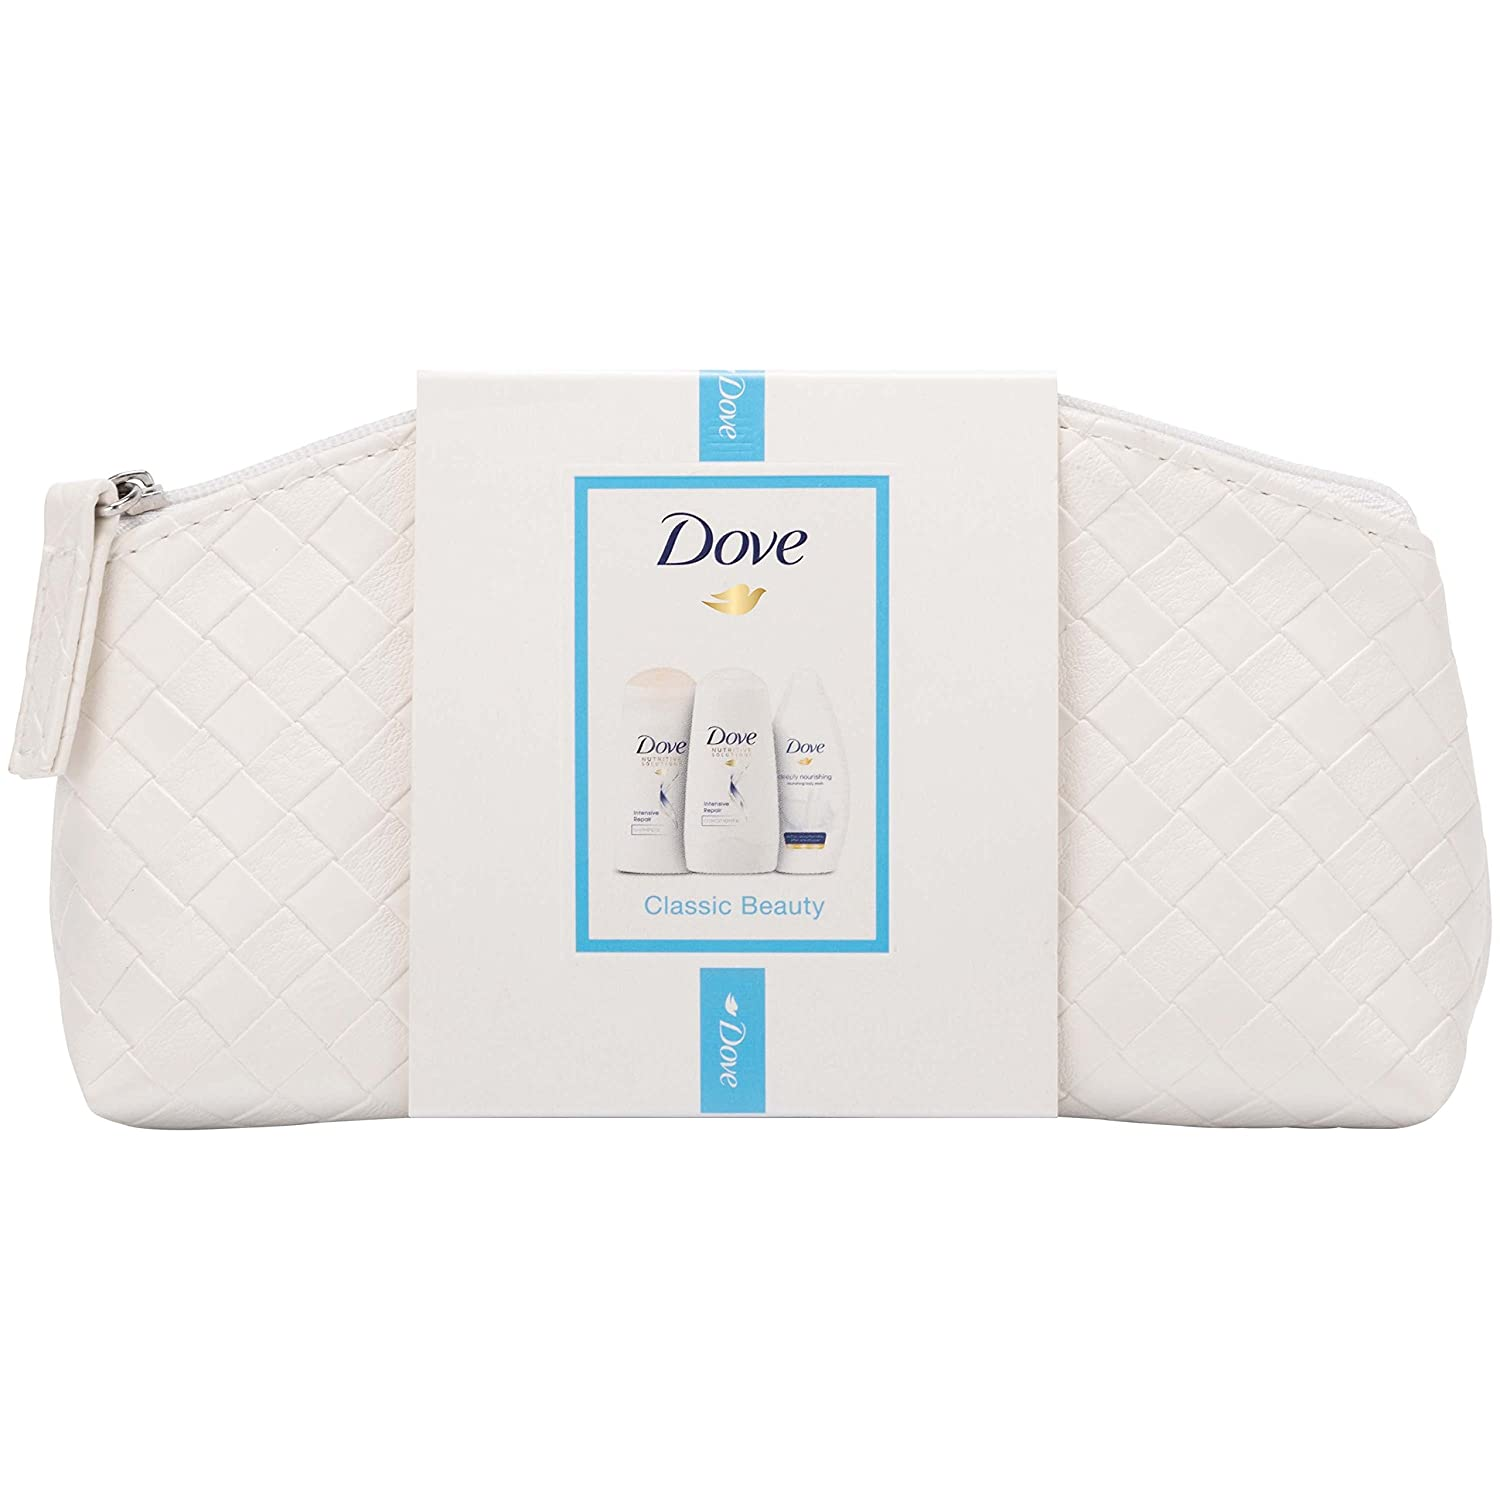 Dove Classic Beauty Make Up Bag Gift Set Unilever 8710522343098